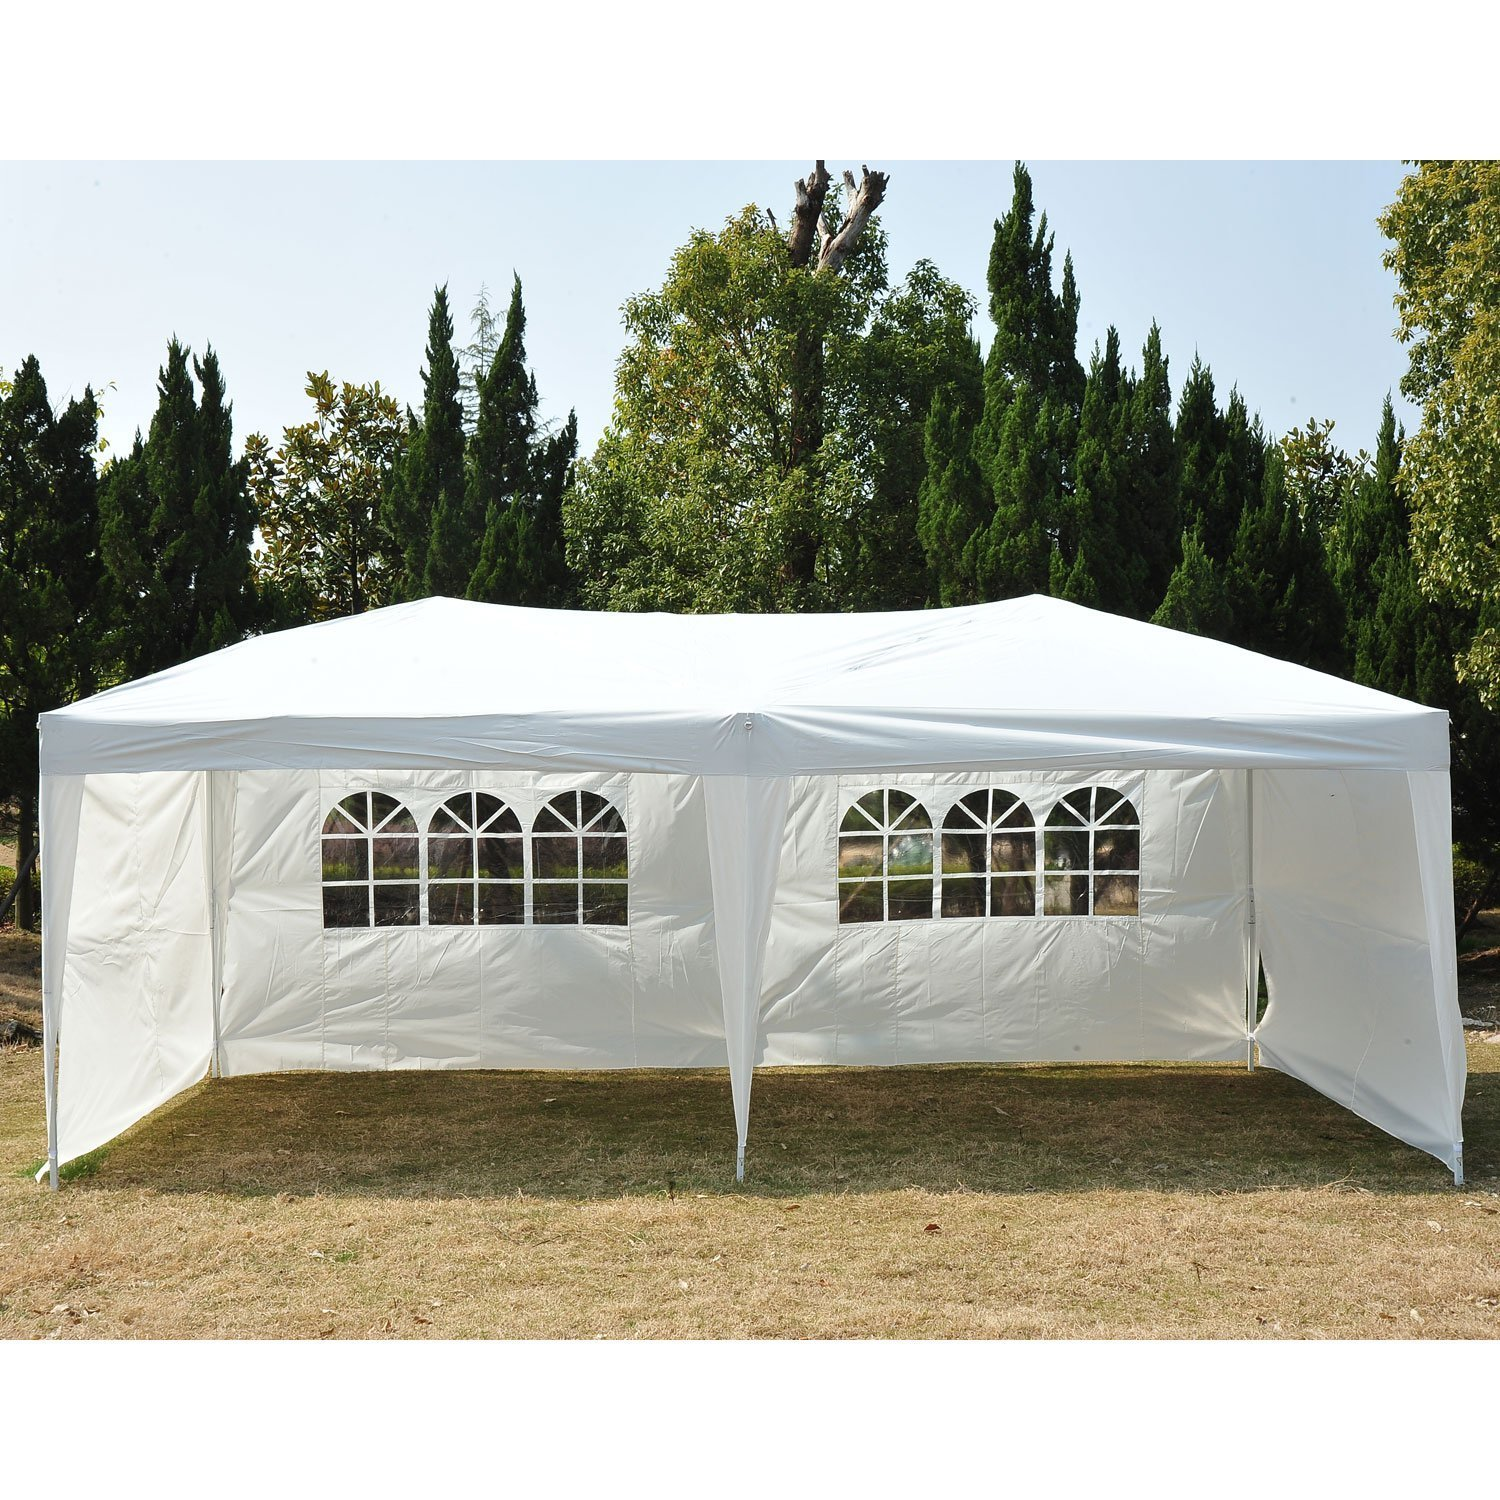 Outsunny Easy Pop Up Canopy Party Tent, Coffee Brown with 4 Removable Sidewalls, 10-Feet x 20-Feet 01-0283